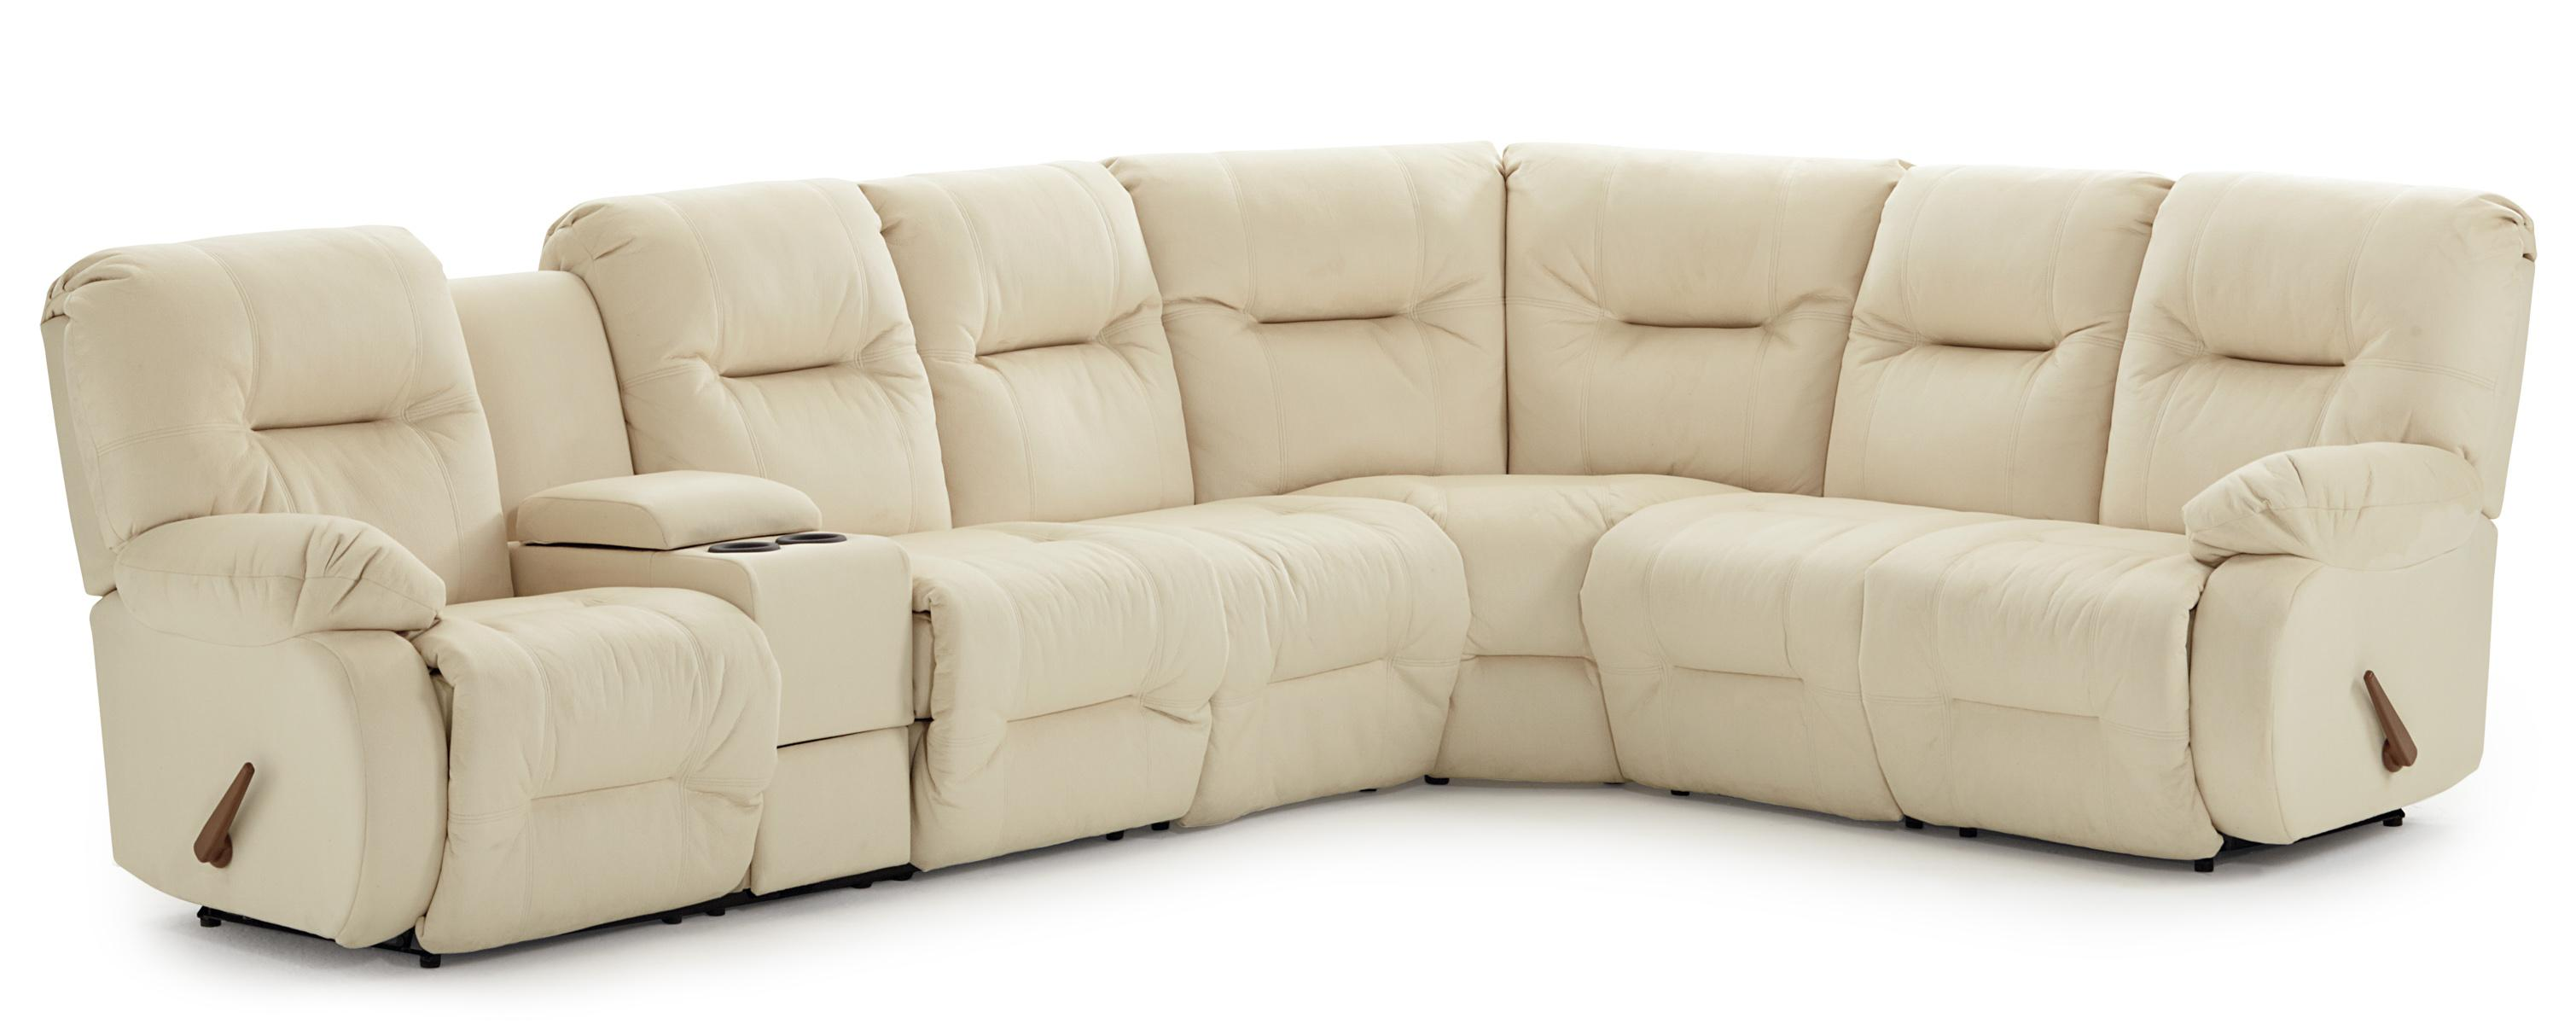 Casual Power Reclining Sectional Sofa With Storage Console And